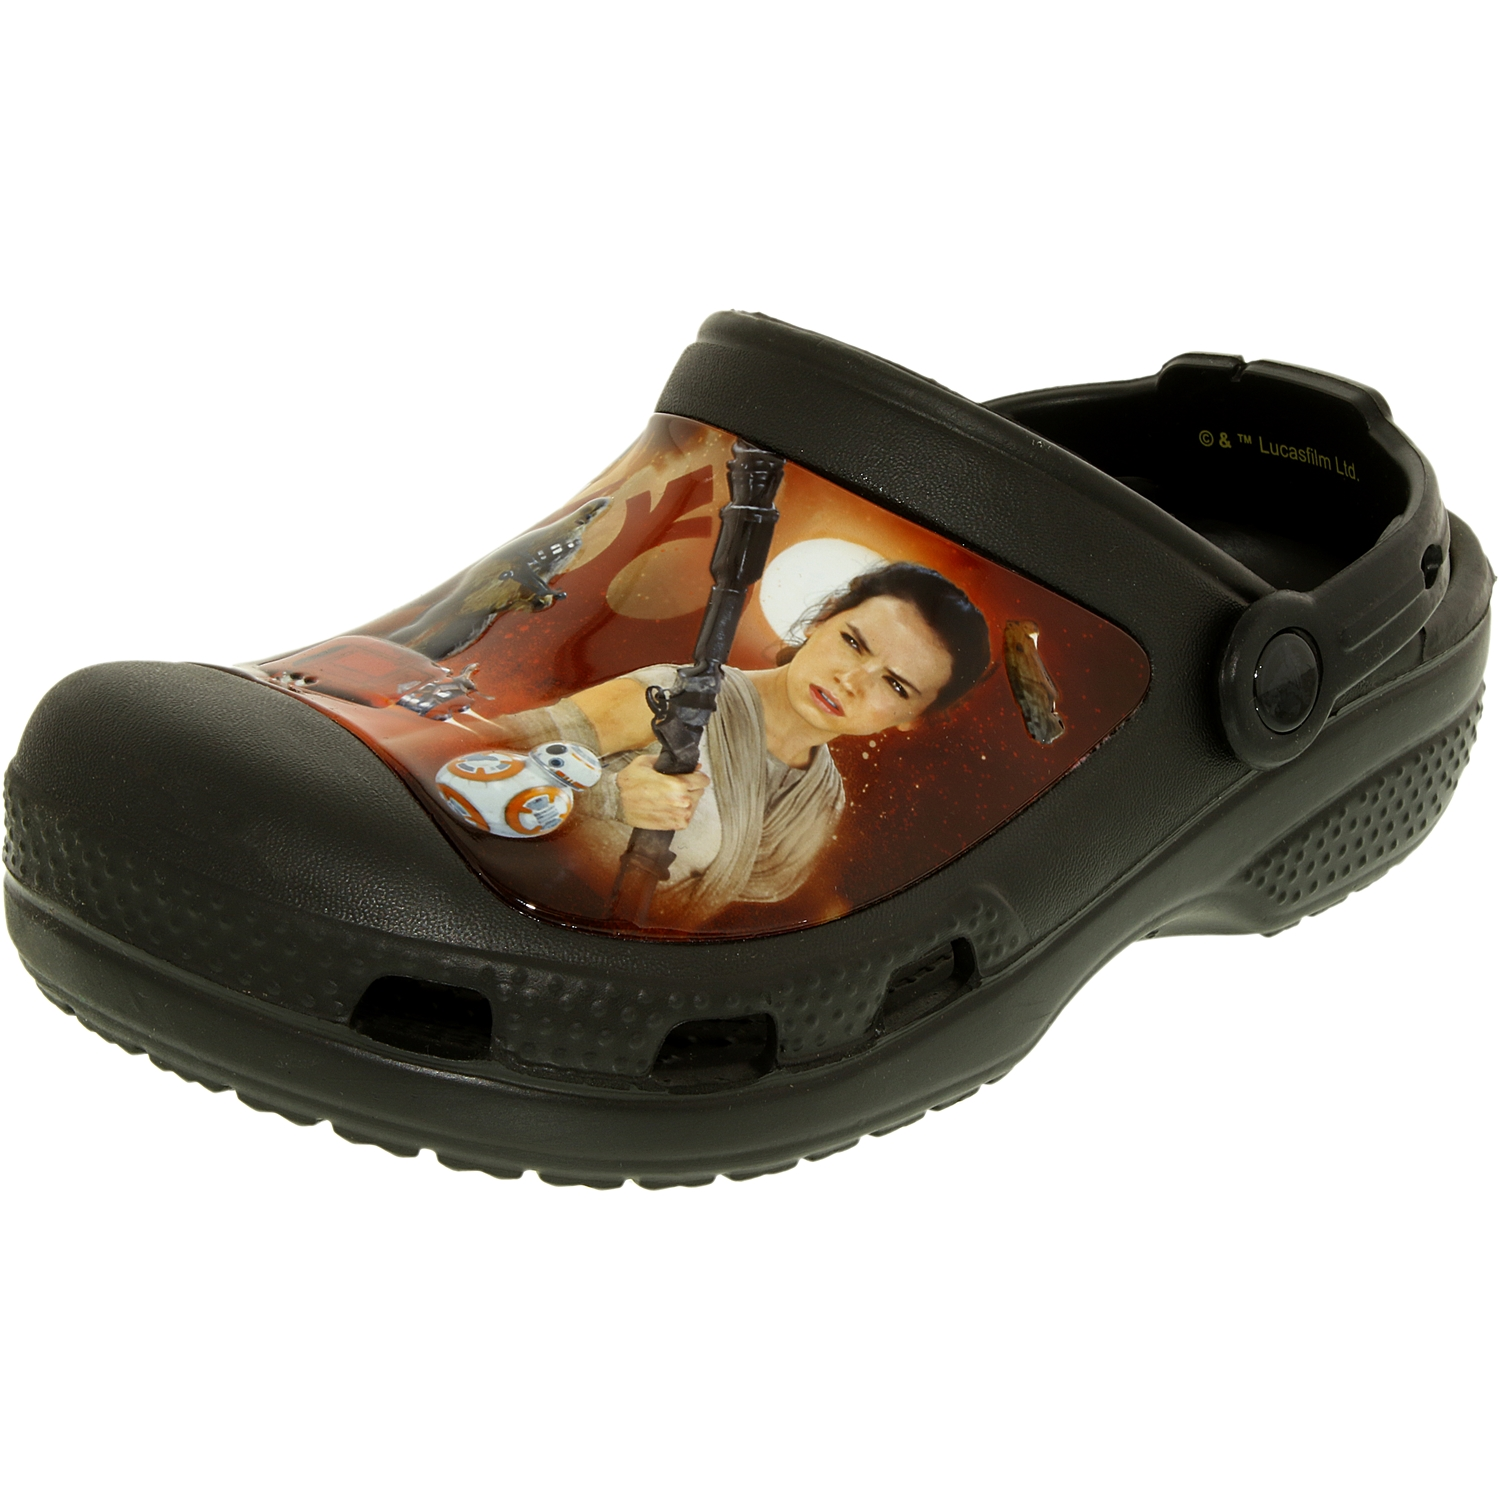 Crocs Boy's Star Wars Black Ankle-High Rubber Flat Shoe 10M by Crocs